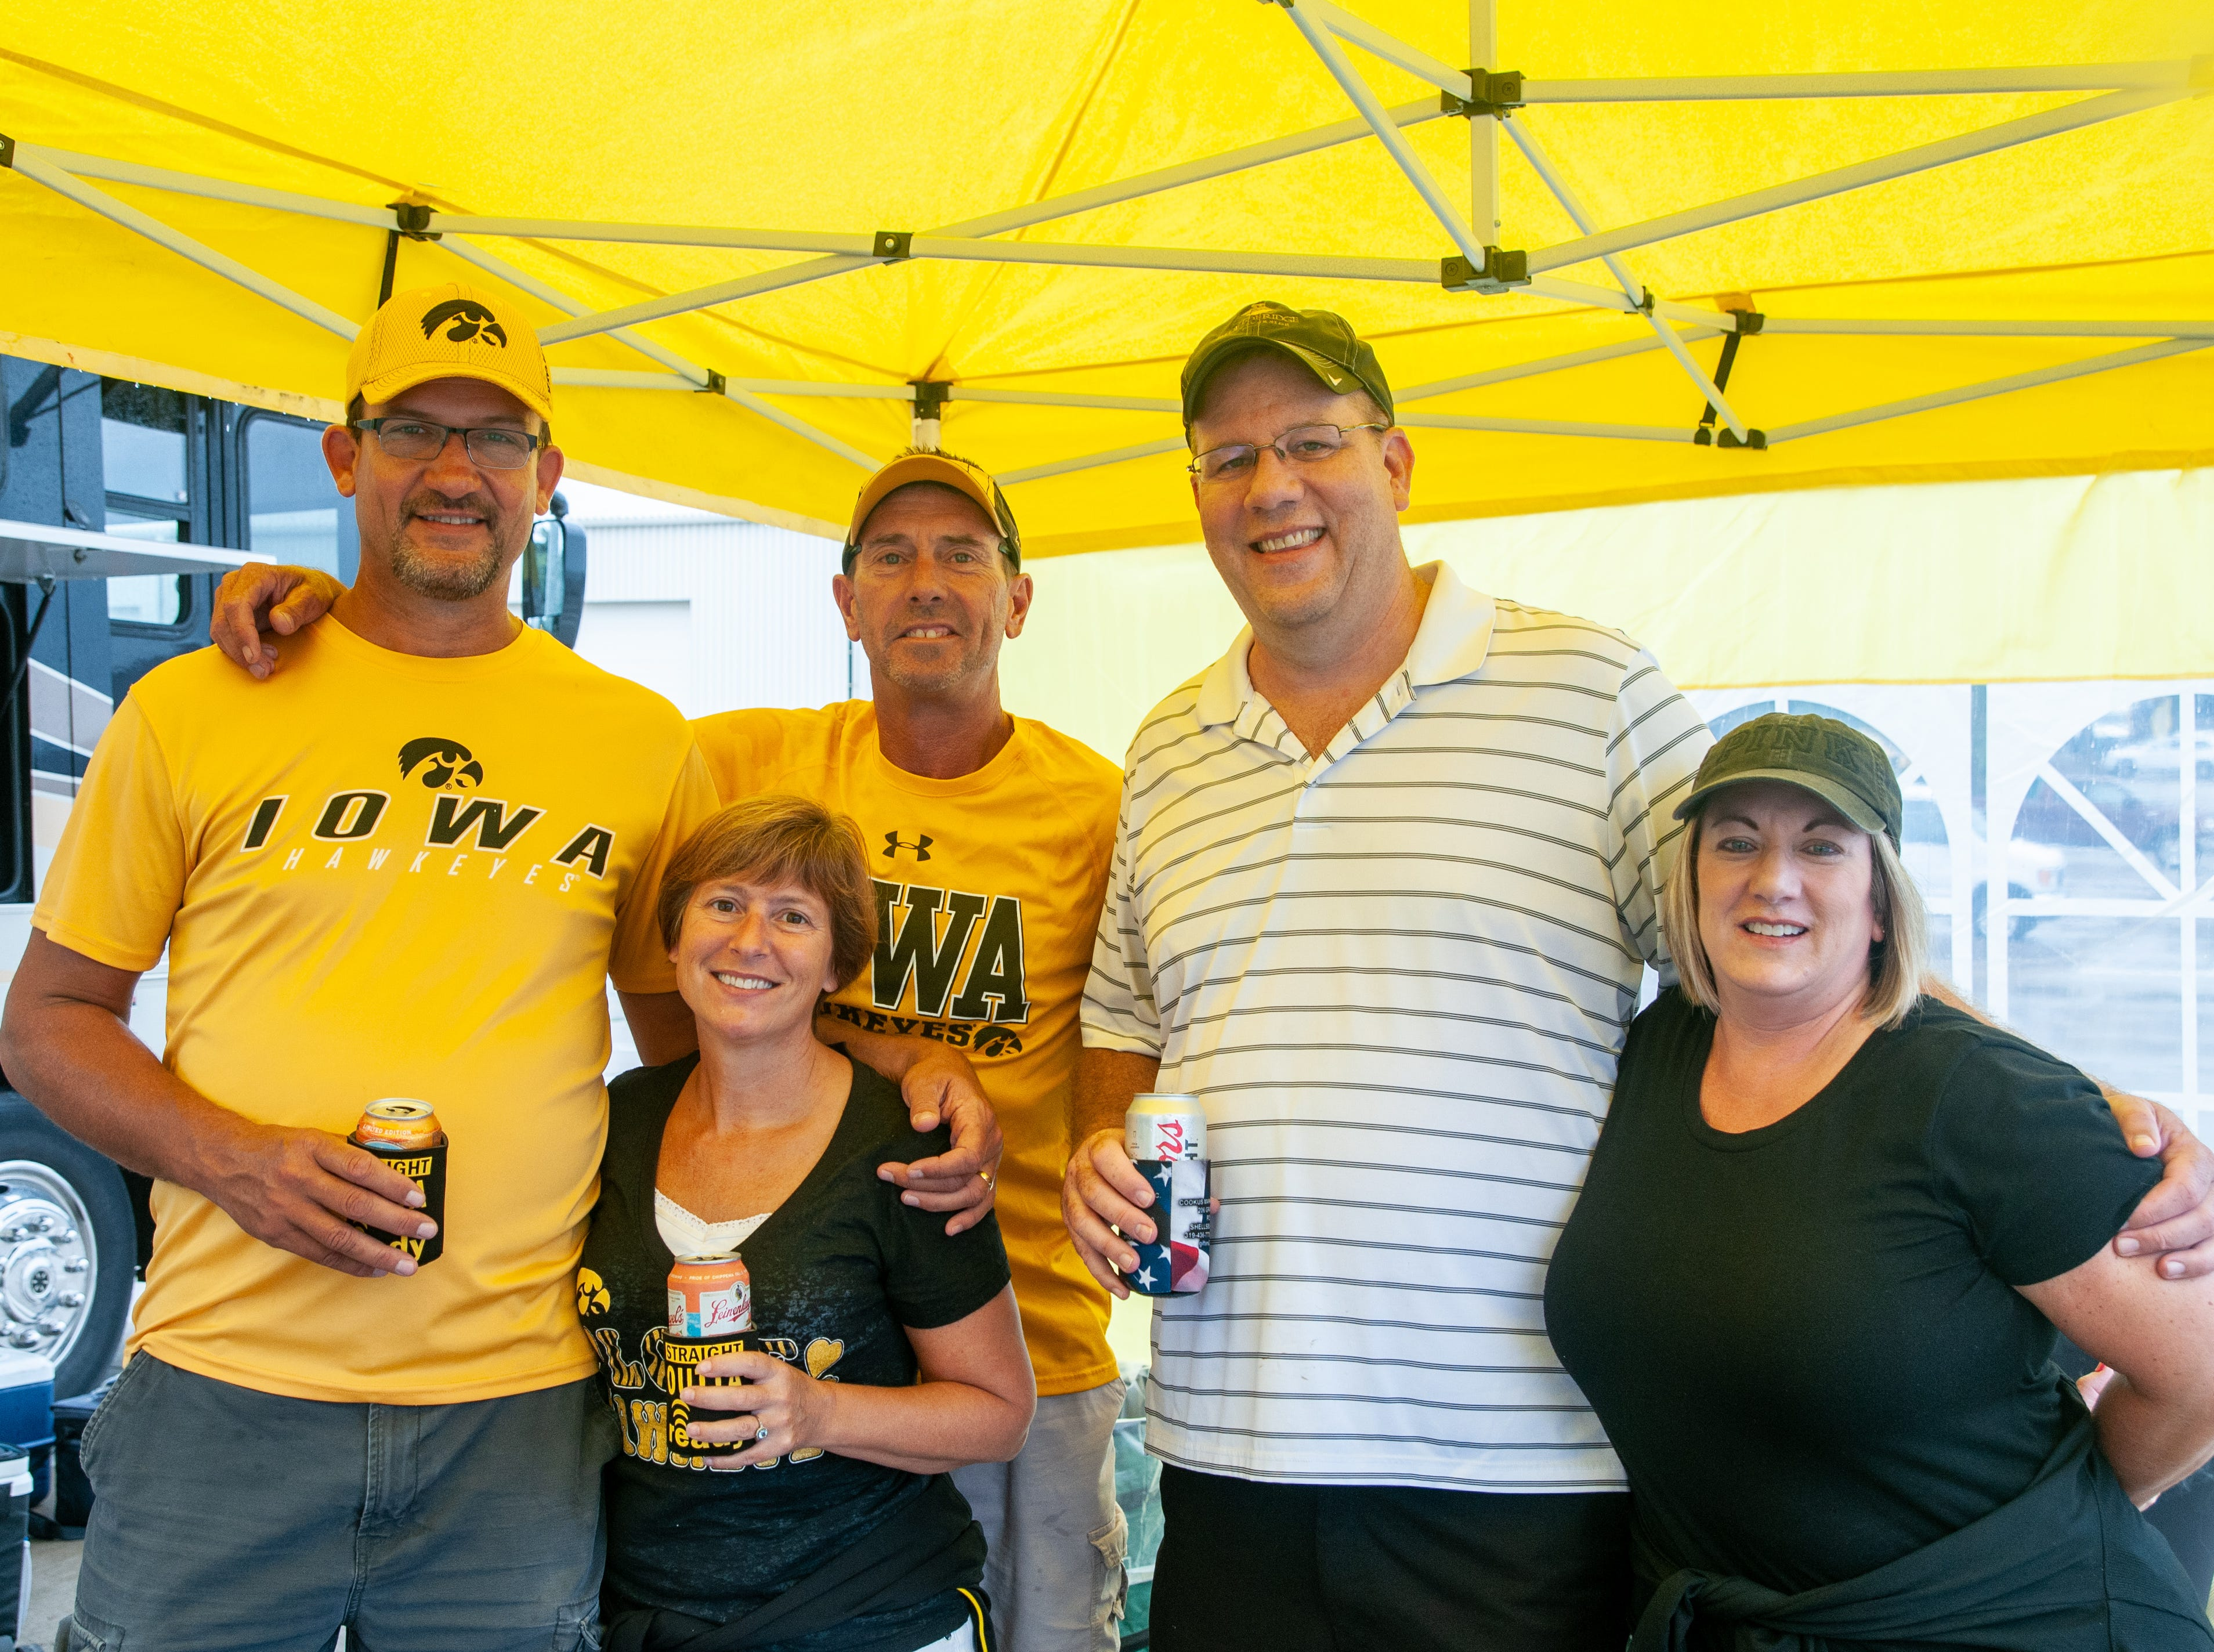 Tony, 49, and Kris Michels, 51, (left), Bryan Reynolds, 49, and Jeremy, 52, and Cynthia Lundy, 47, Saturday, Sept. 1, 2018, while tailgating before the Iowa game against Northern Illinois in Iowa City.